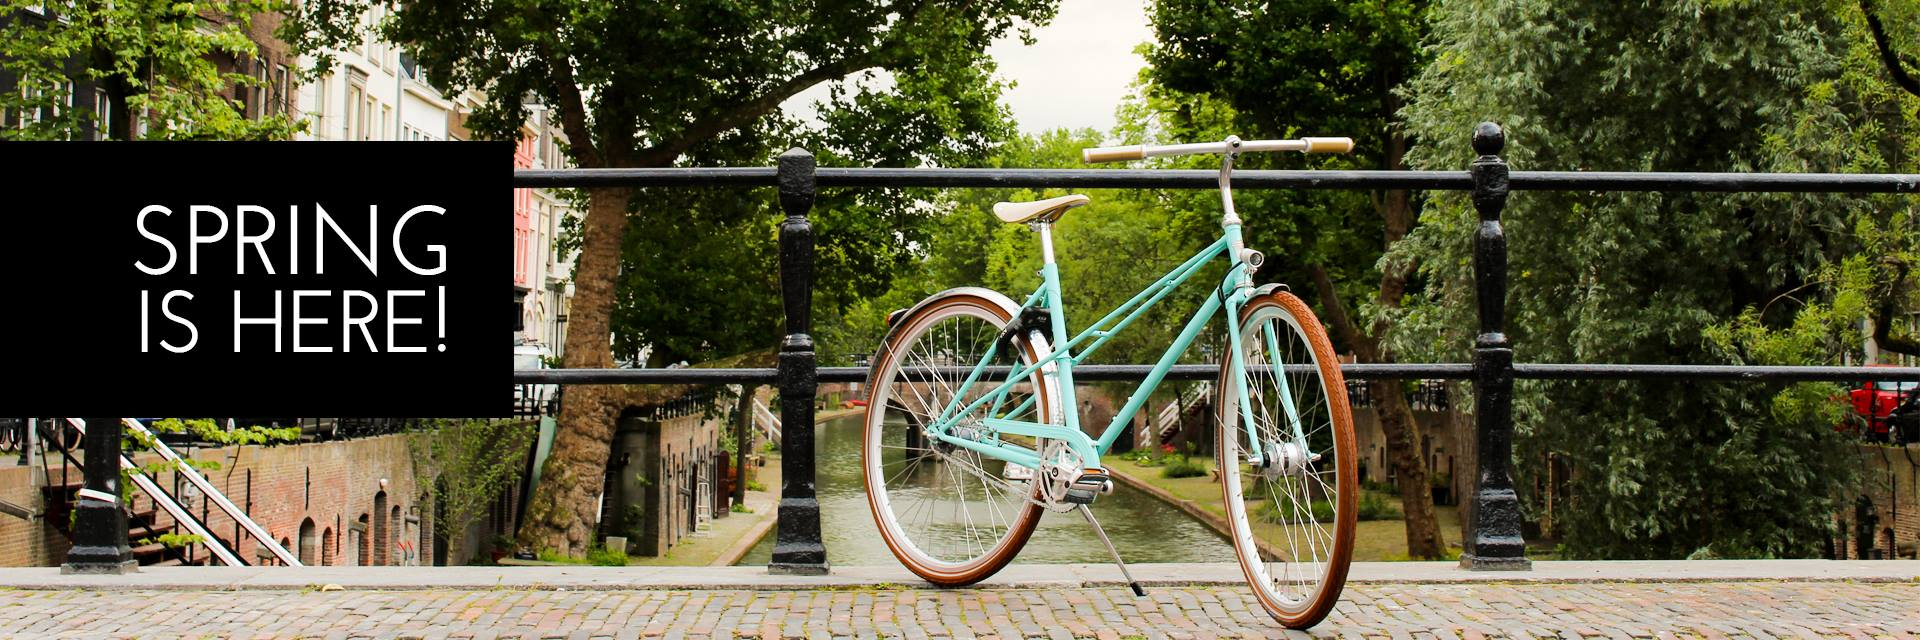 Celebrate spring with a new bike